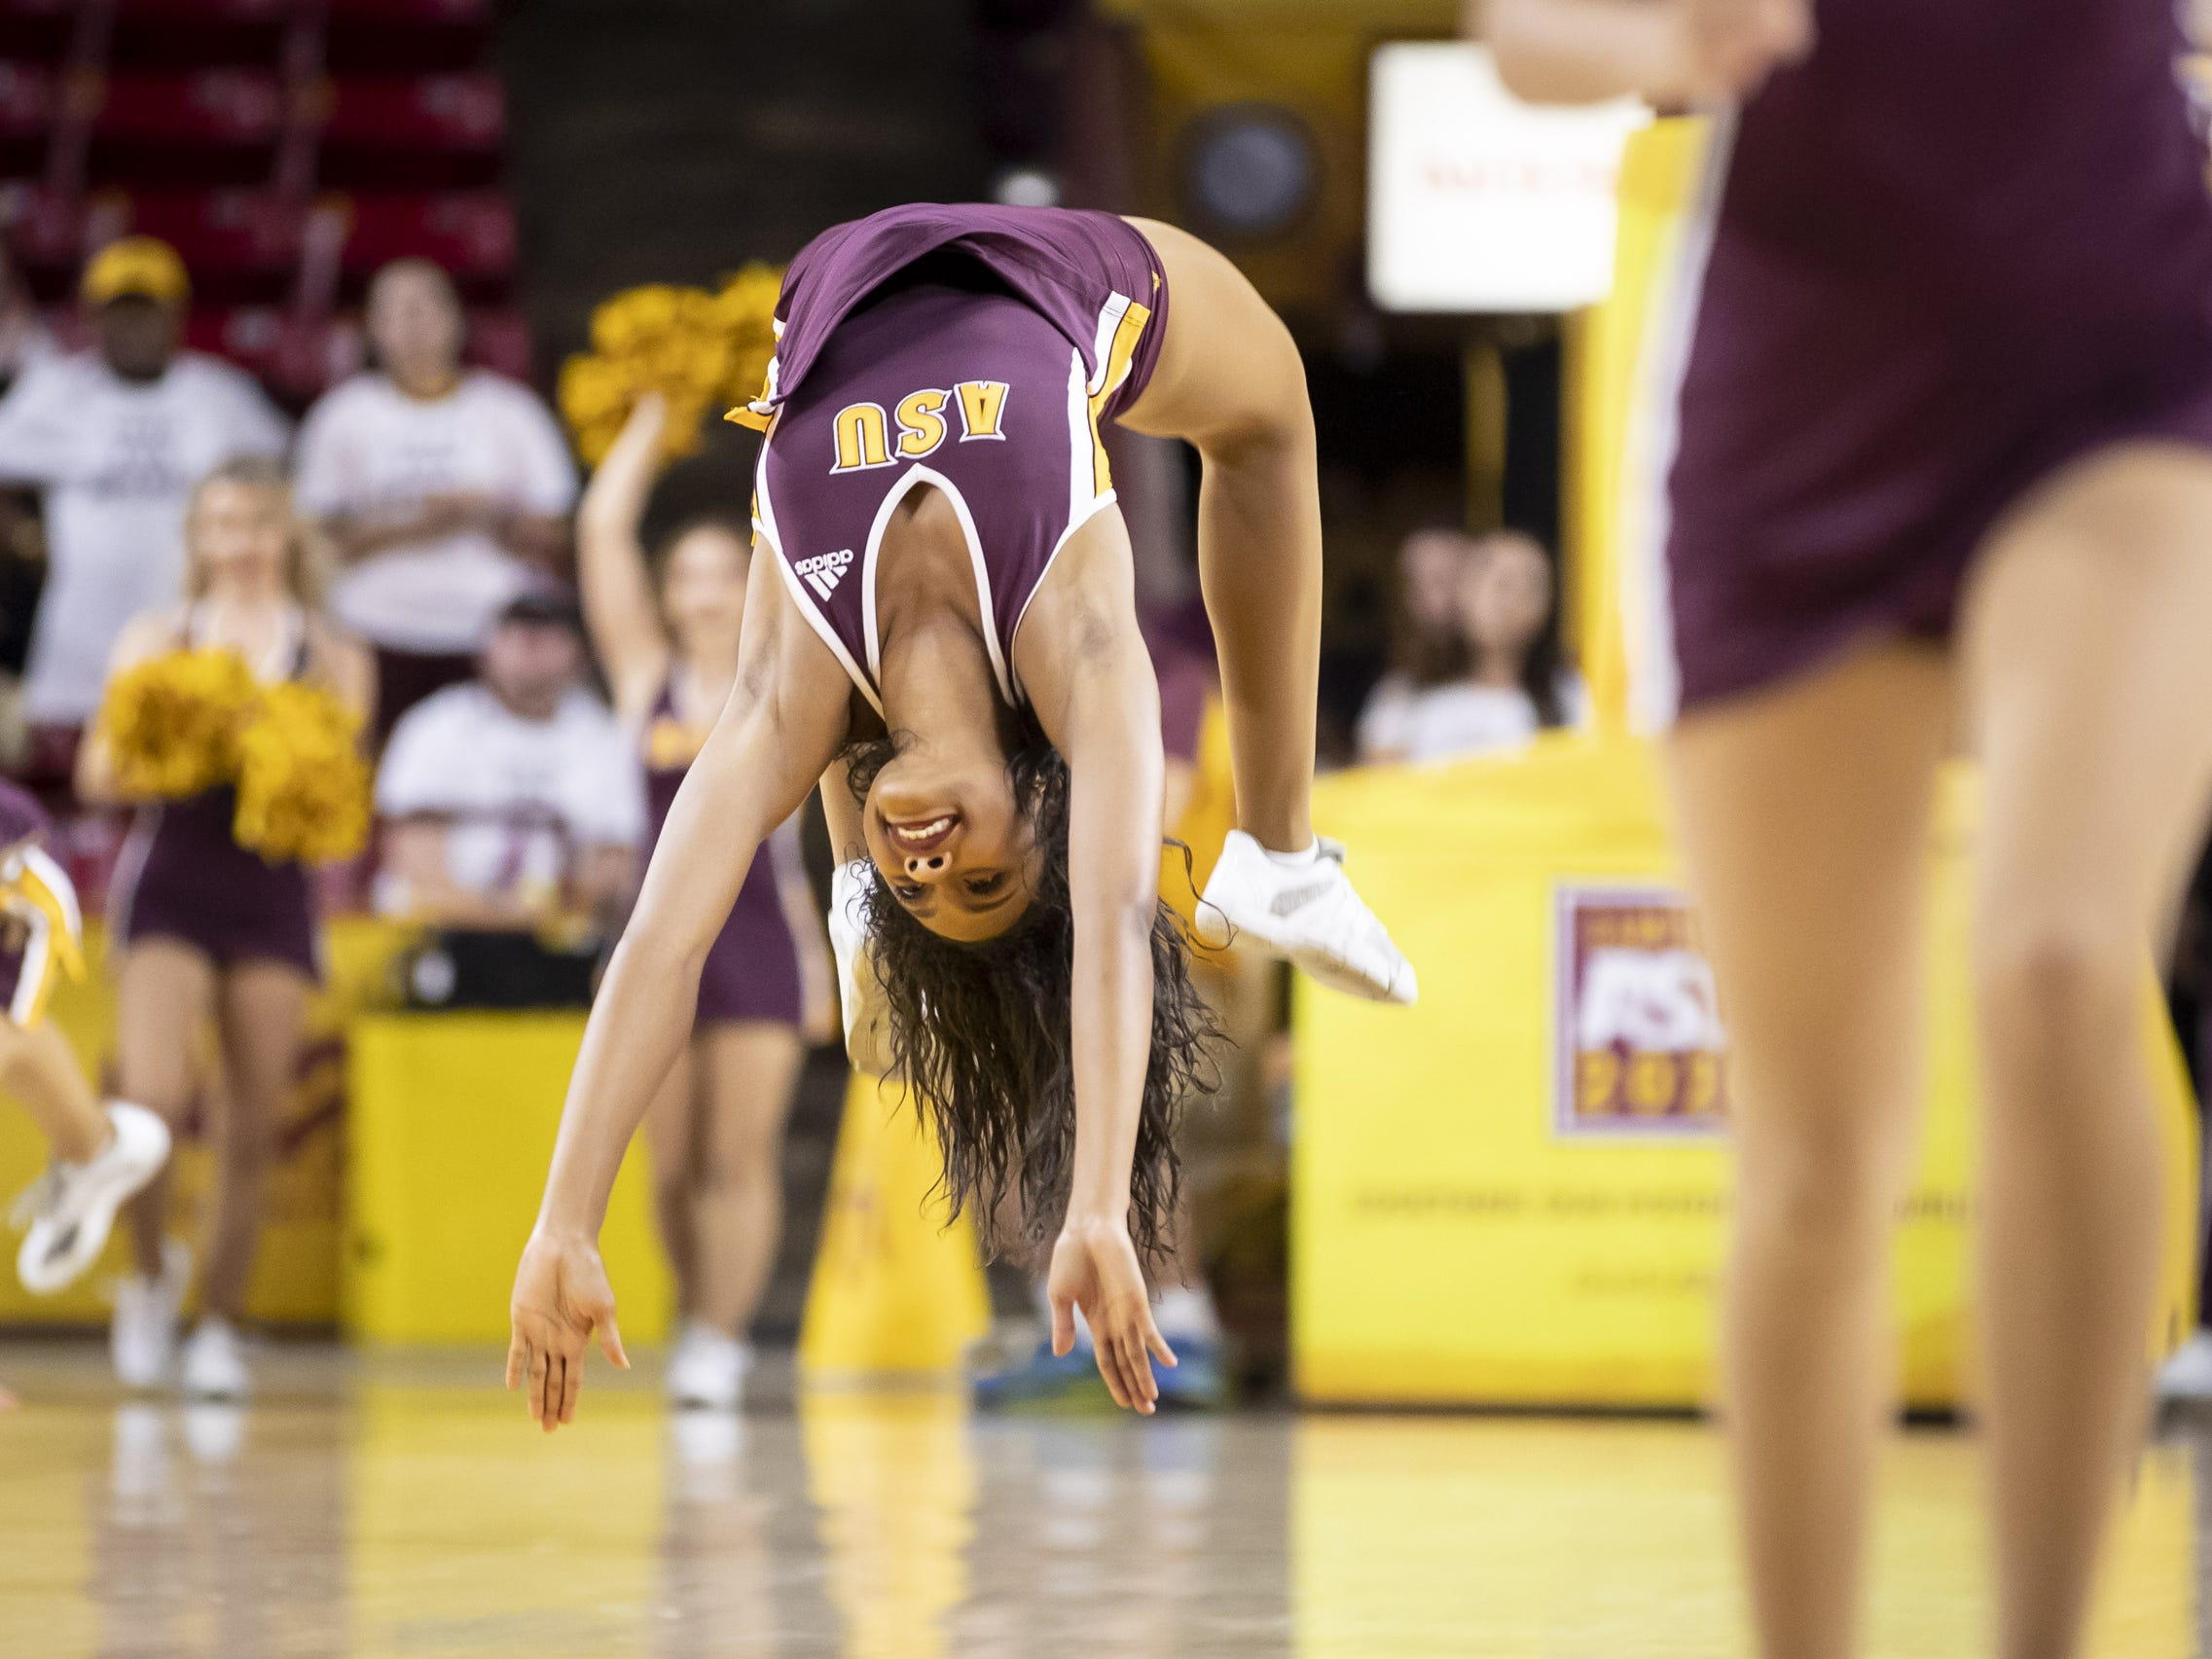 An Arizona State Sun Devil cheerleader tumbles during the game against the Incarnate Word Cardinals at Wells Fargo Arena on Tuesday, November 6, 2018 in Tempe, Arizona.